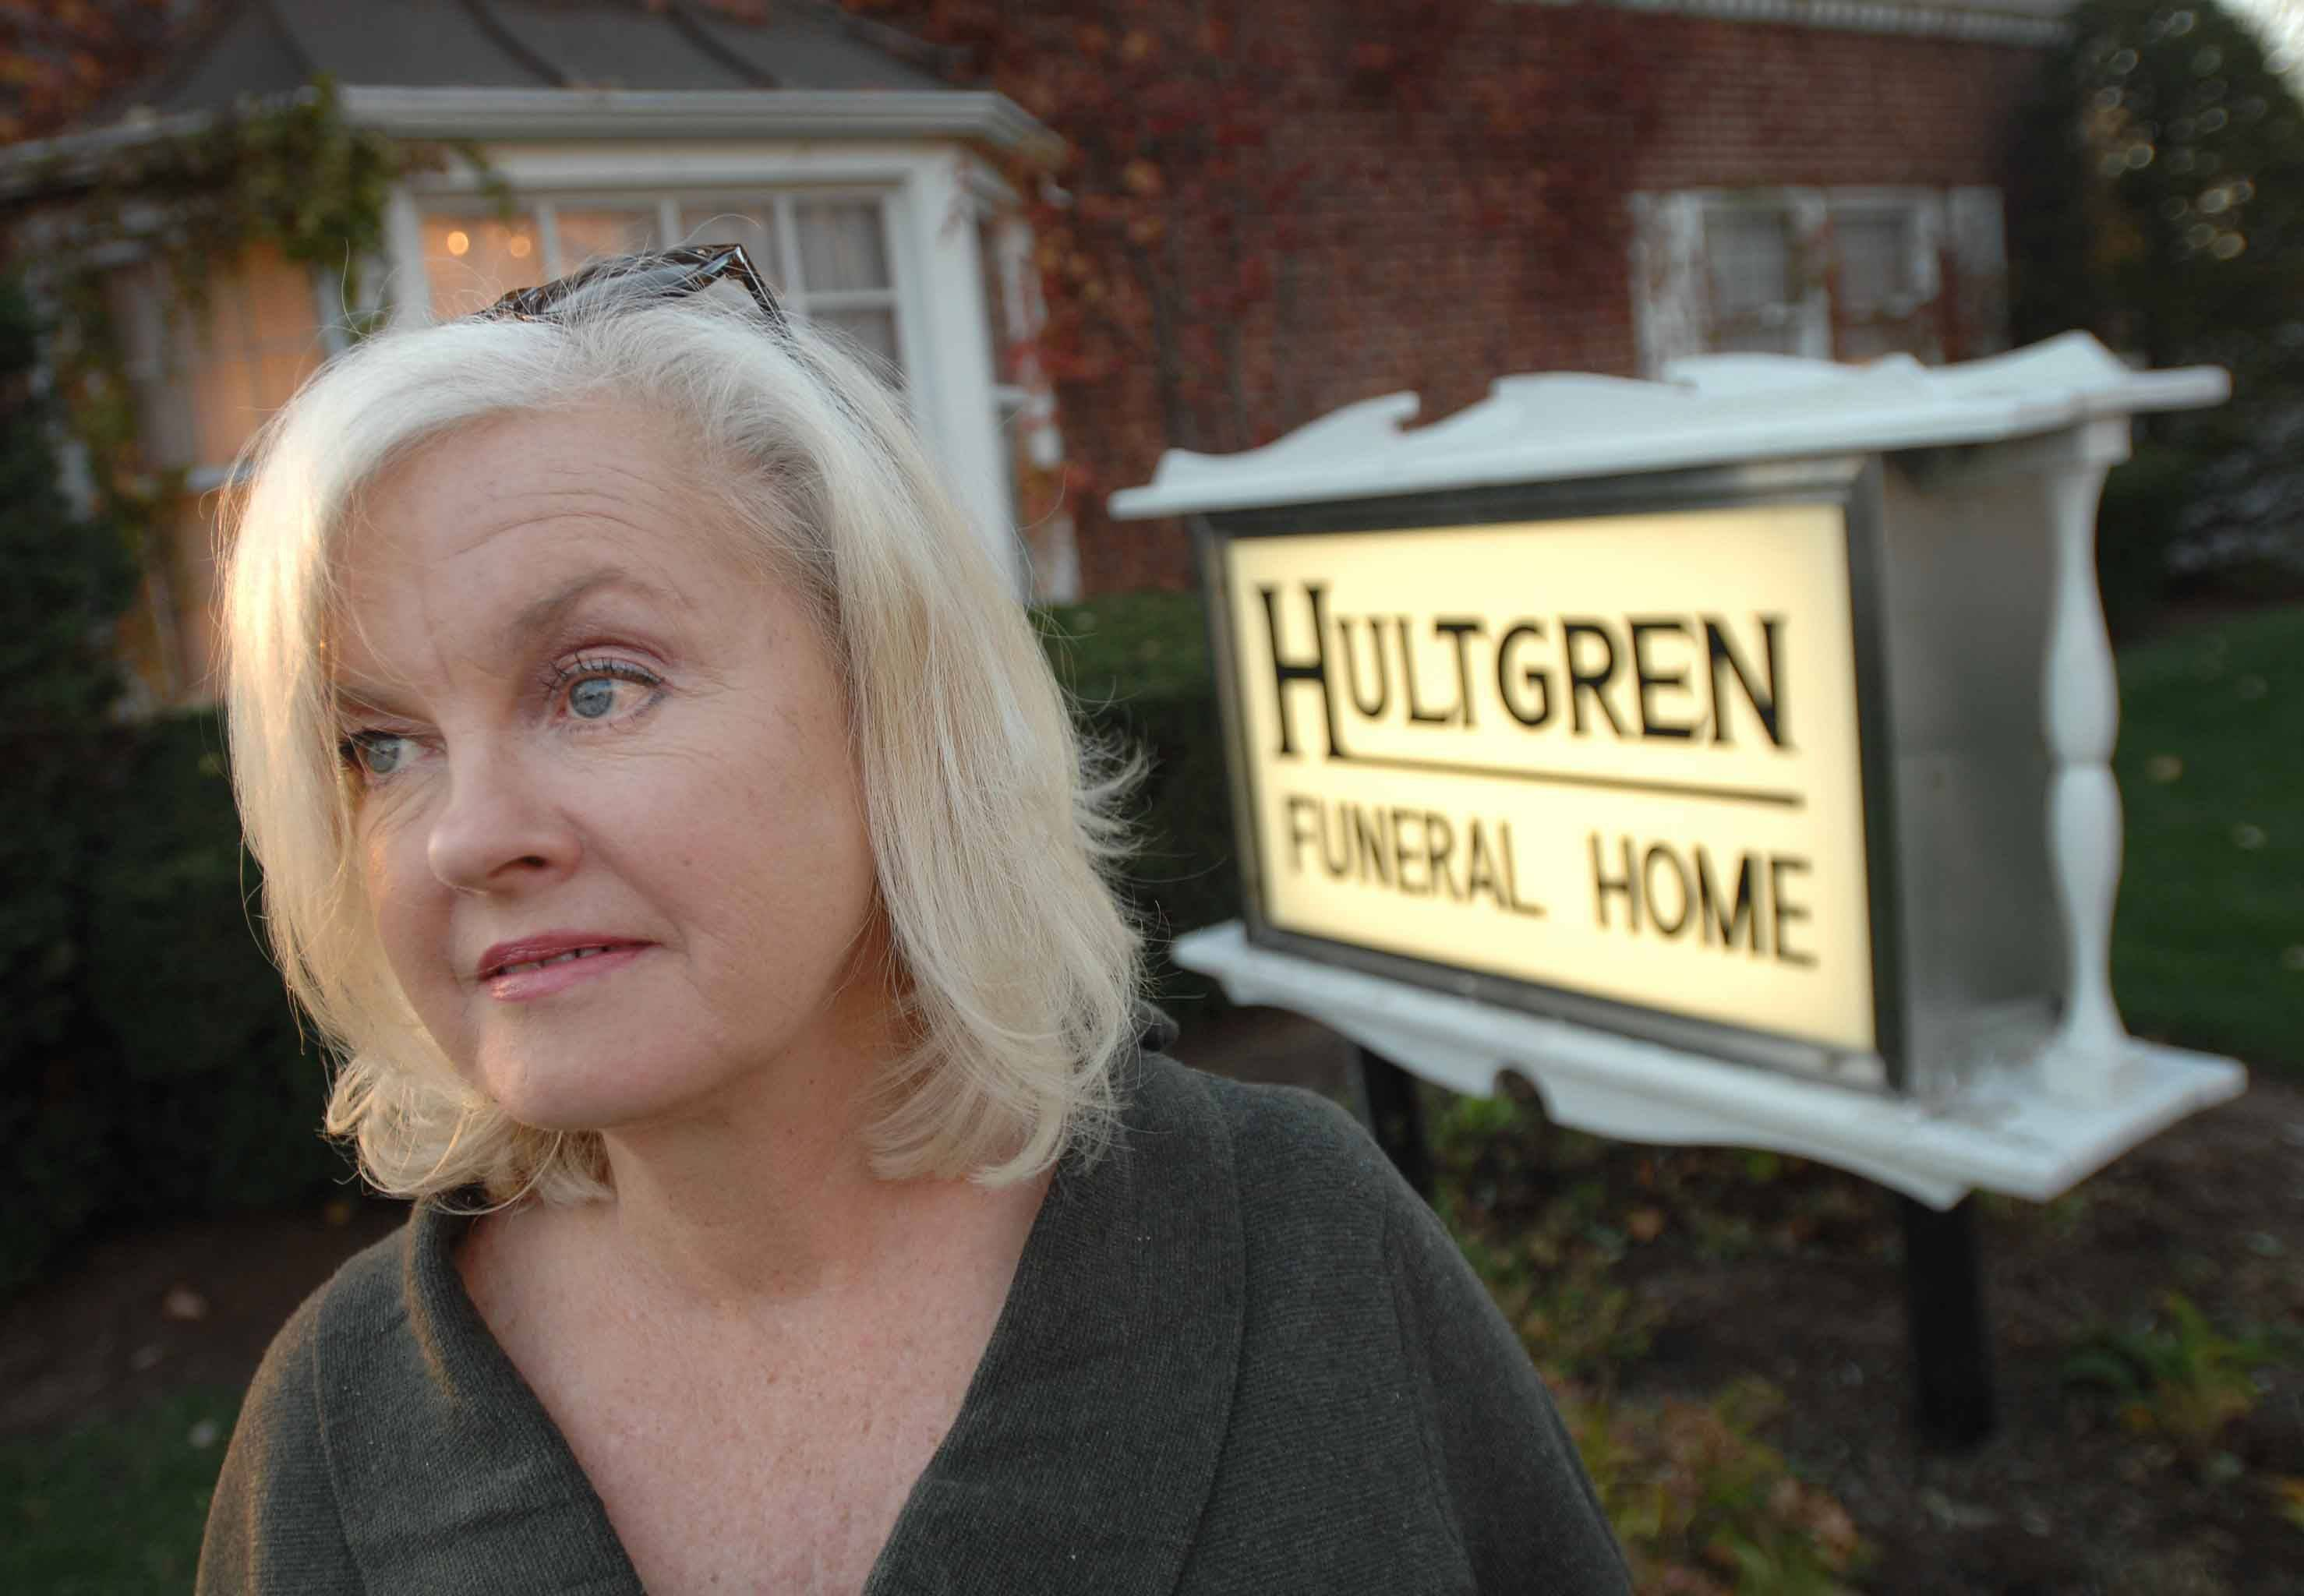 Lea Minalga, who runs the Hearts of Hope organization, stands in front of the Hultgren Funeral Home in Wheaton Tuesday. She has attended more than 100 funerals in the past 10 years for people who have died of drug overdoses.